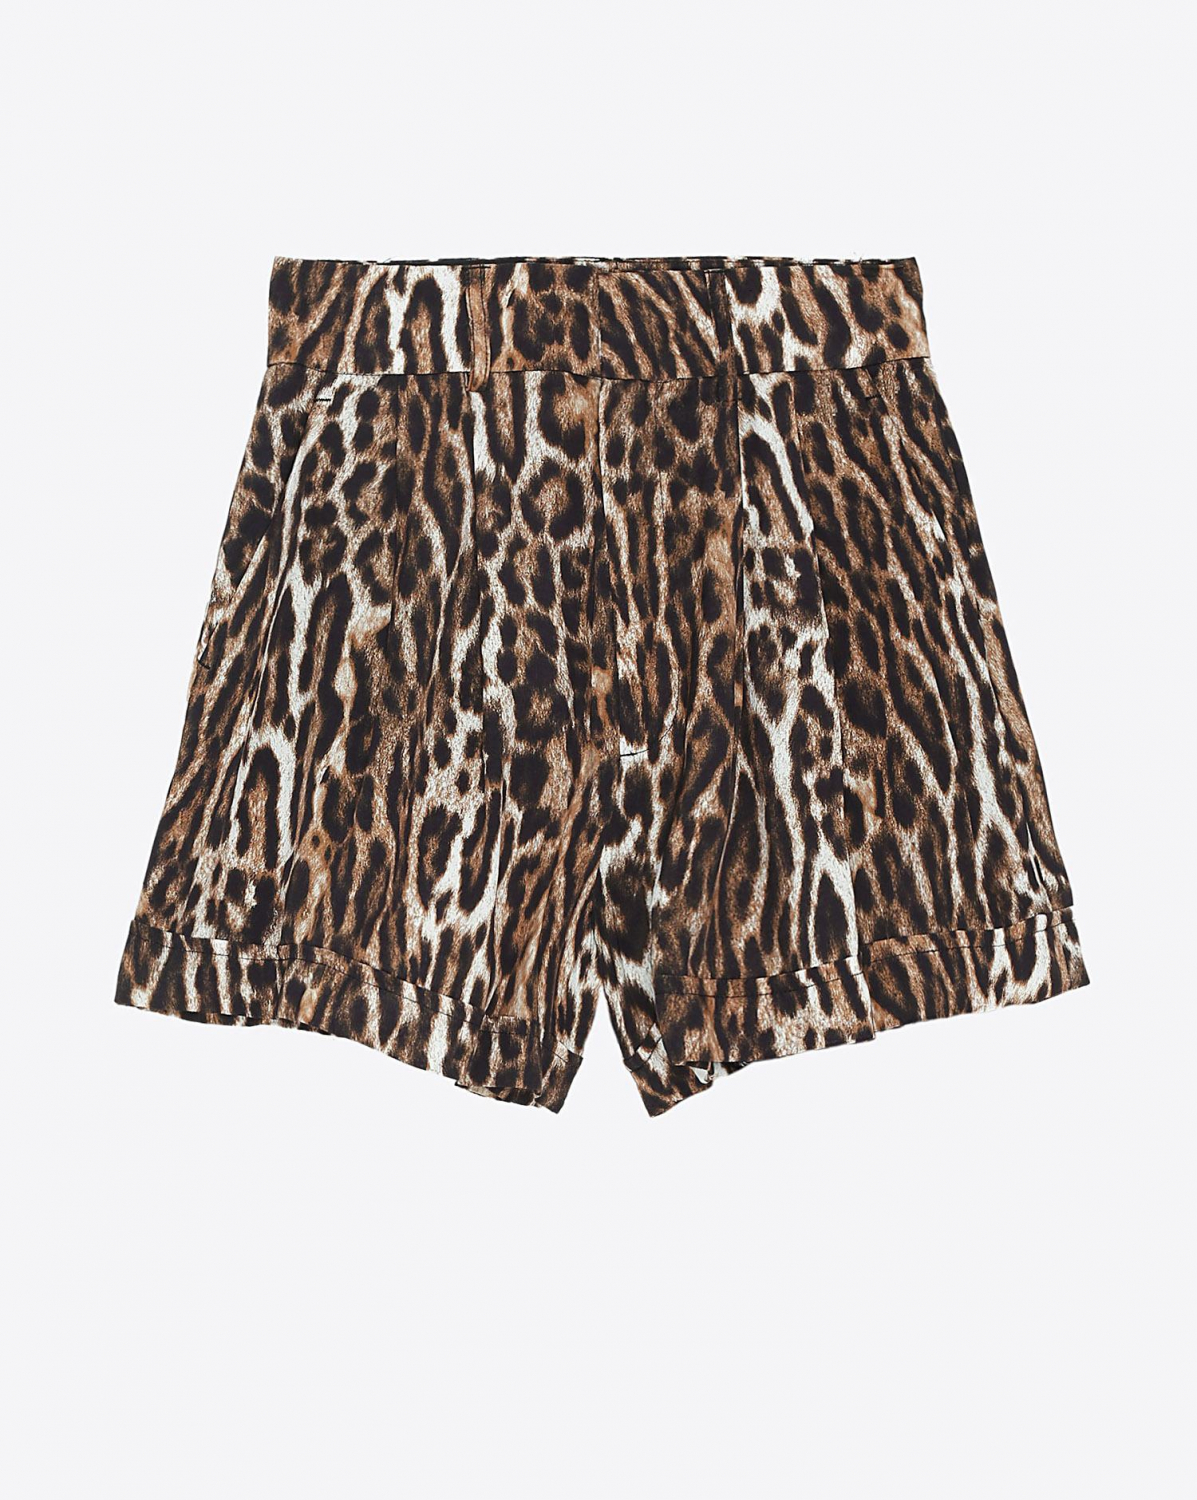 R13 Denim Collection Pleated High Rise Short - Leopard